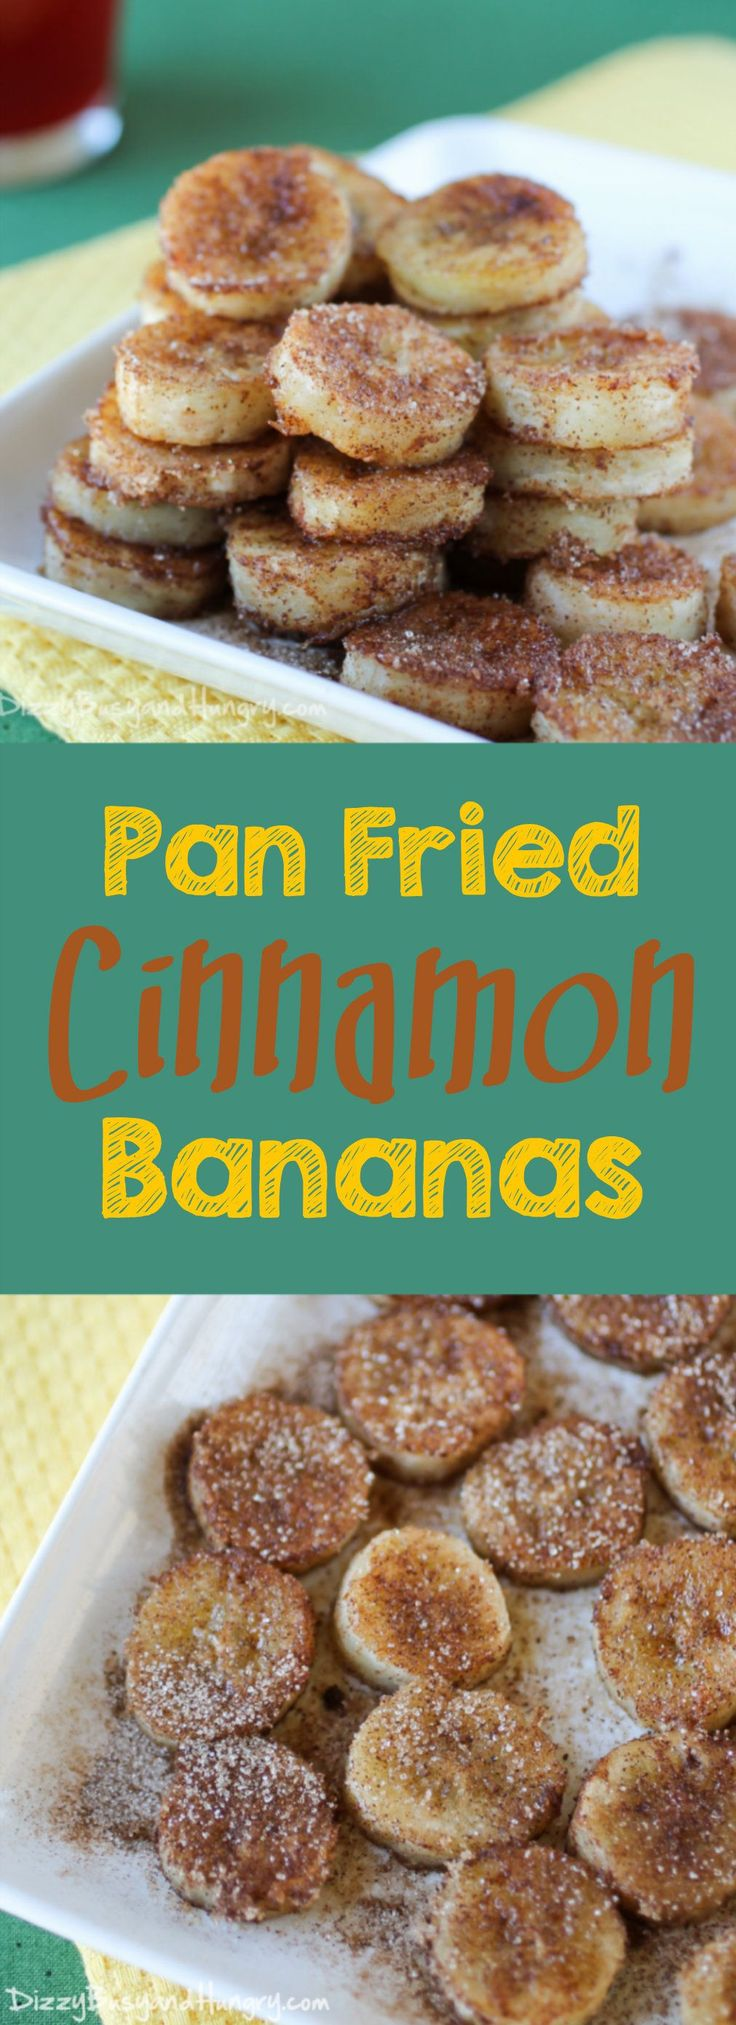 asics sale canada Pan Fried Cinnamon Bananas   Quick and easy recipe for overripe bananas  perfect for a special breakfast or an afternoon snack